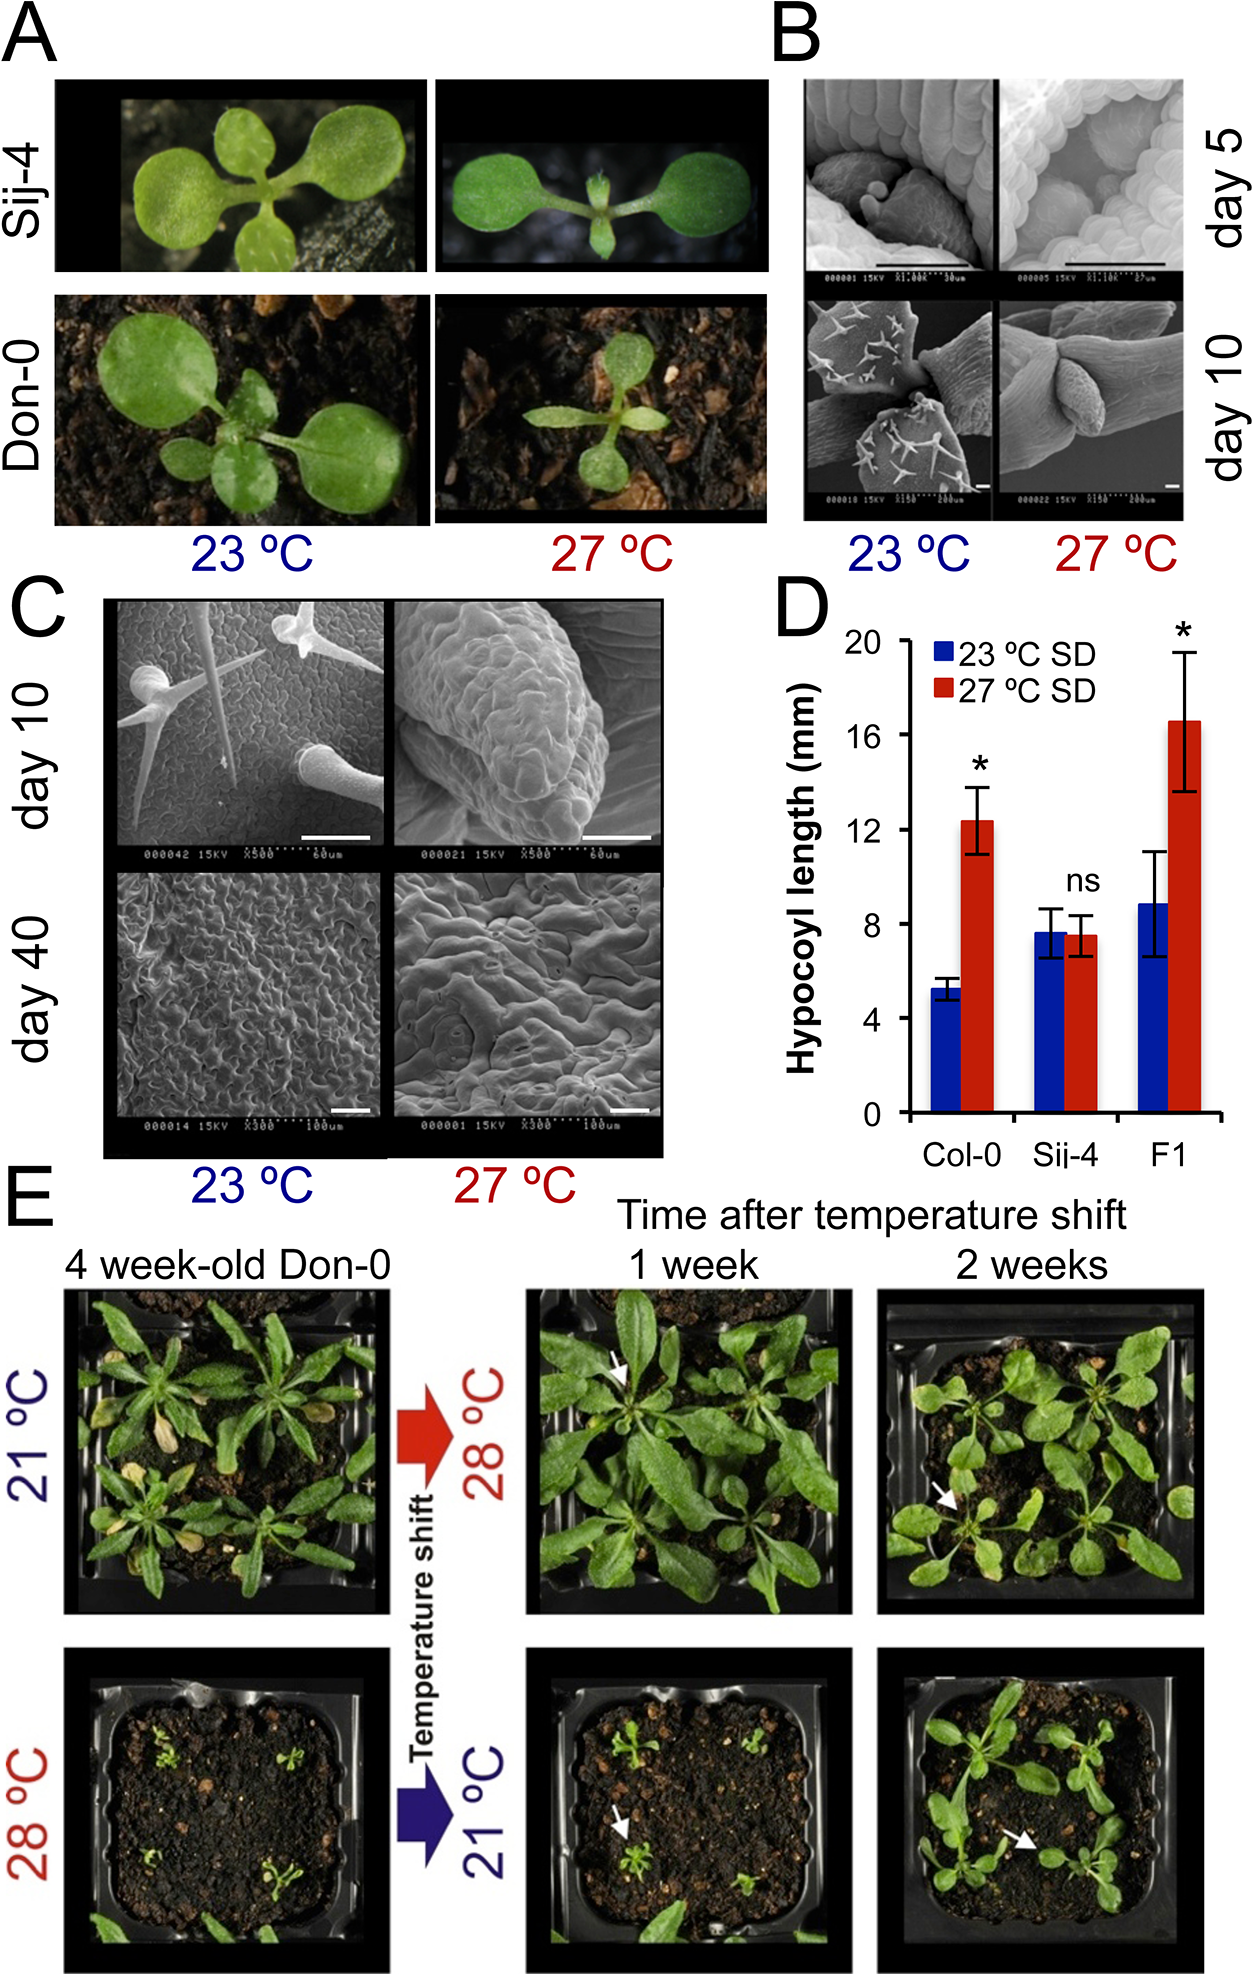 <i>ICA1 g</i>rowth phenotypes in natural accessions of Arabidopsis depend on temperature.